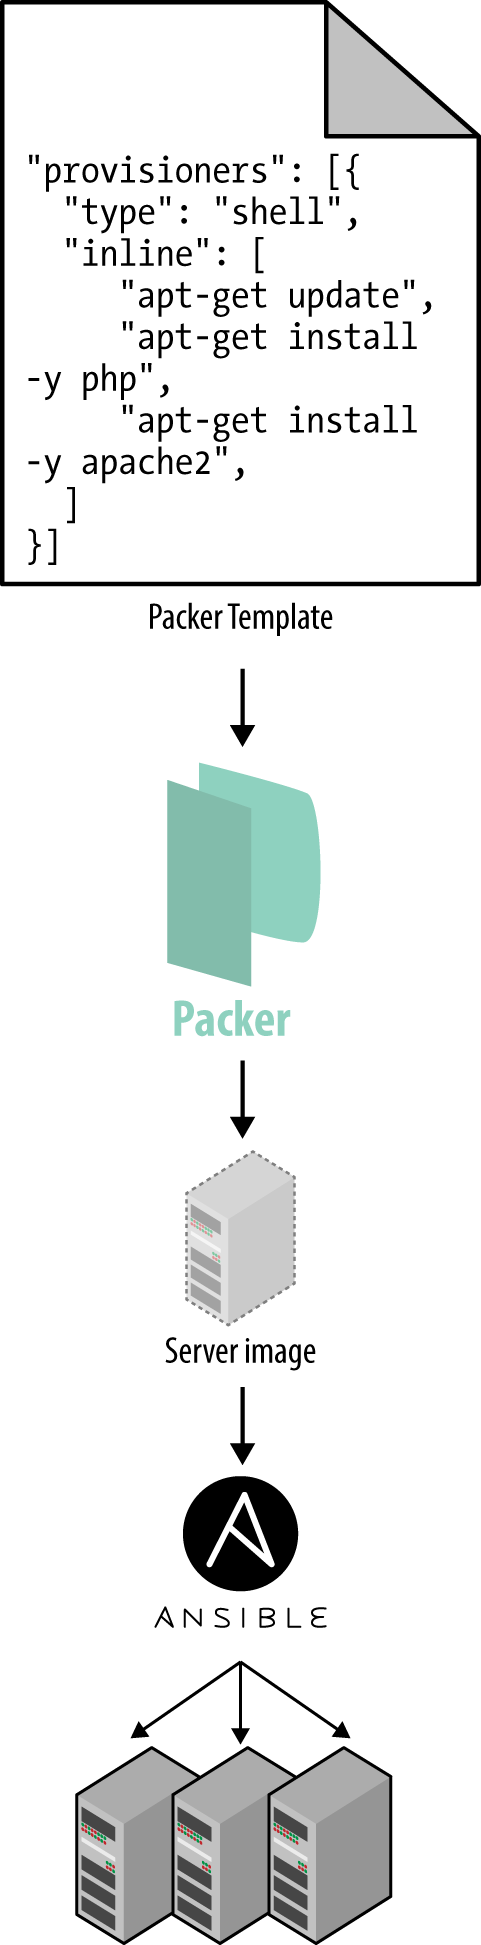 A server templating tool like Packer can be used to create a self-contained image of a server. You can then use other tools, such as Ansible, to install that image across all of your servers.